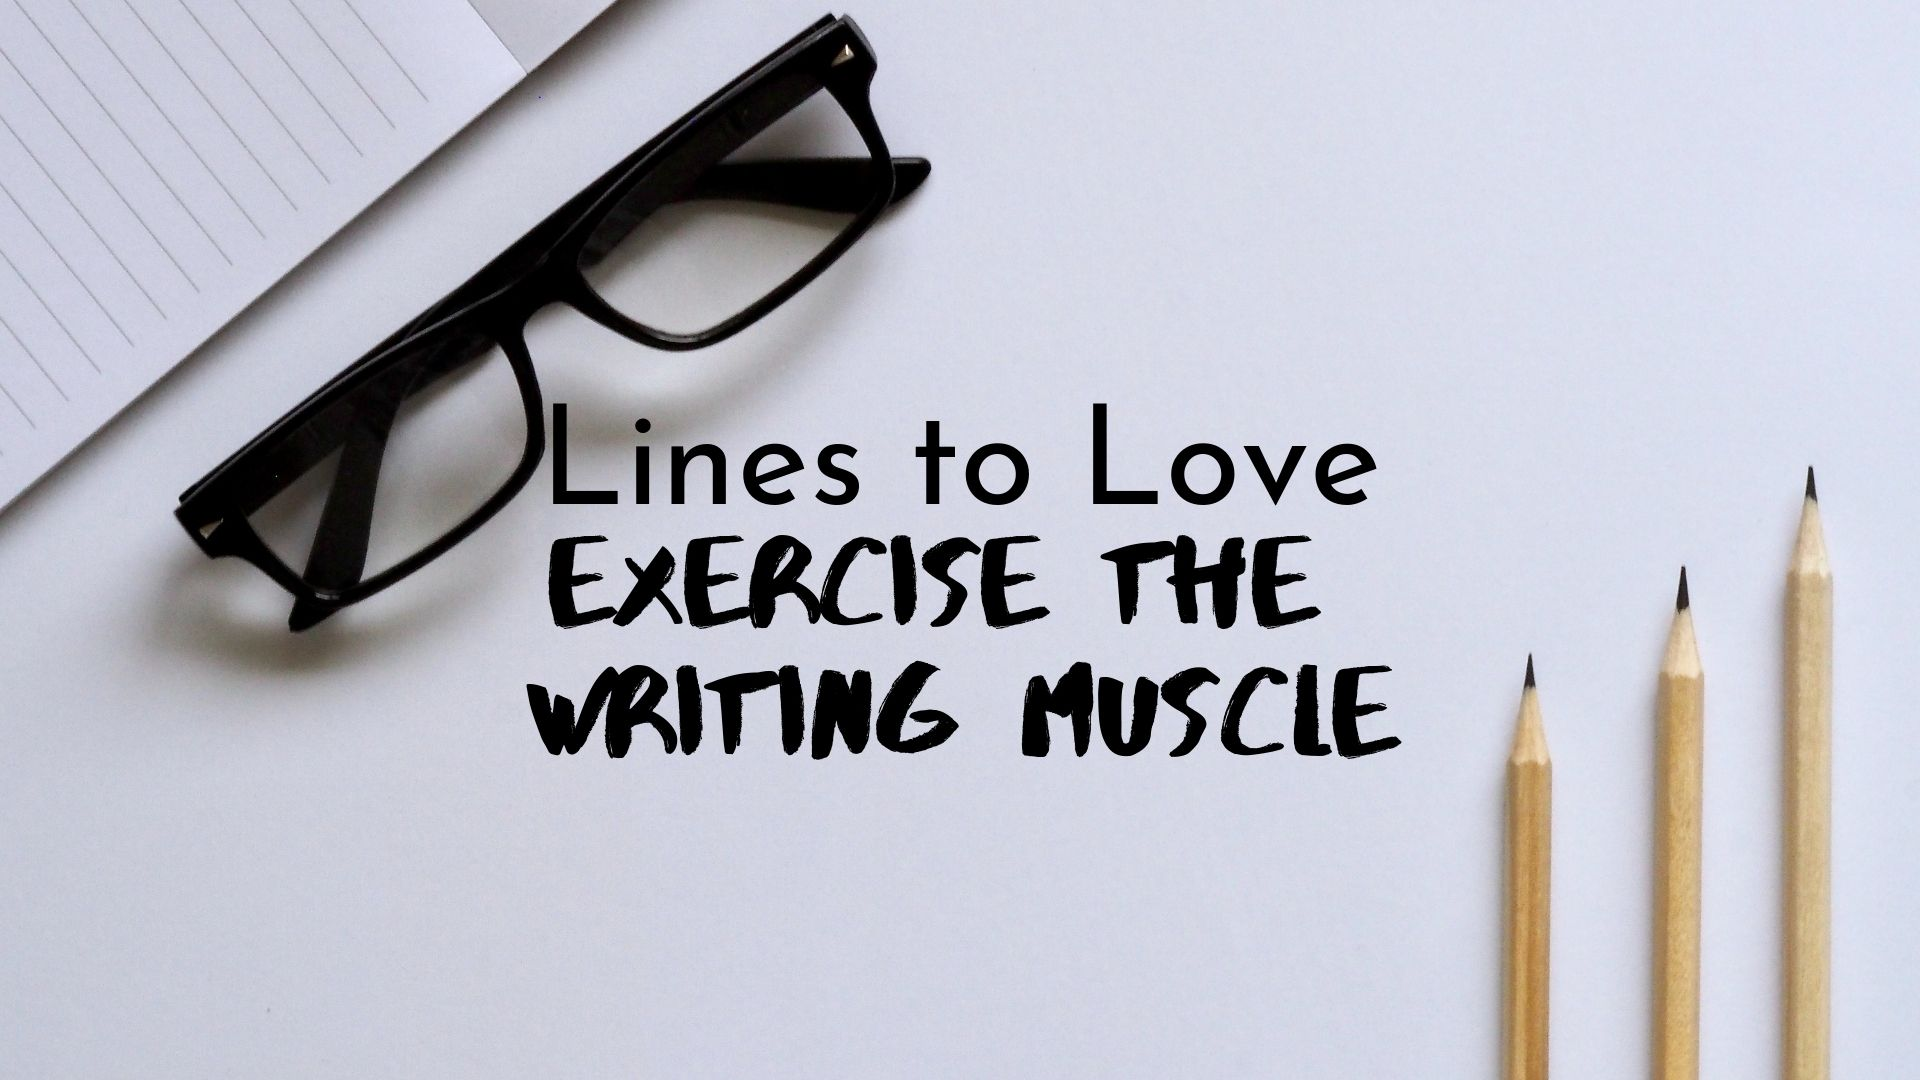 banner-lines-to-love-exercise-the-writing-muscle-01.jpg